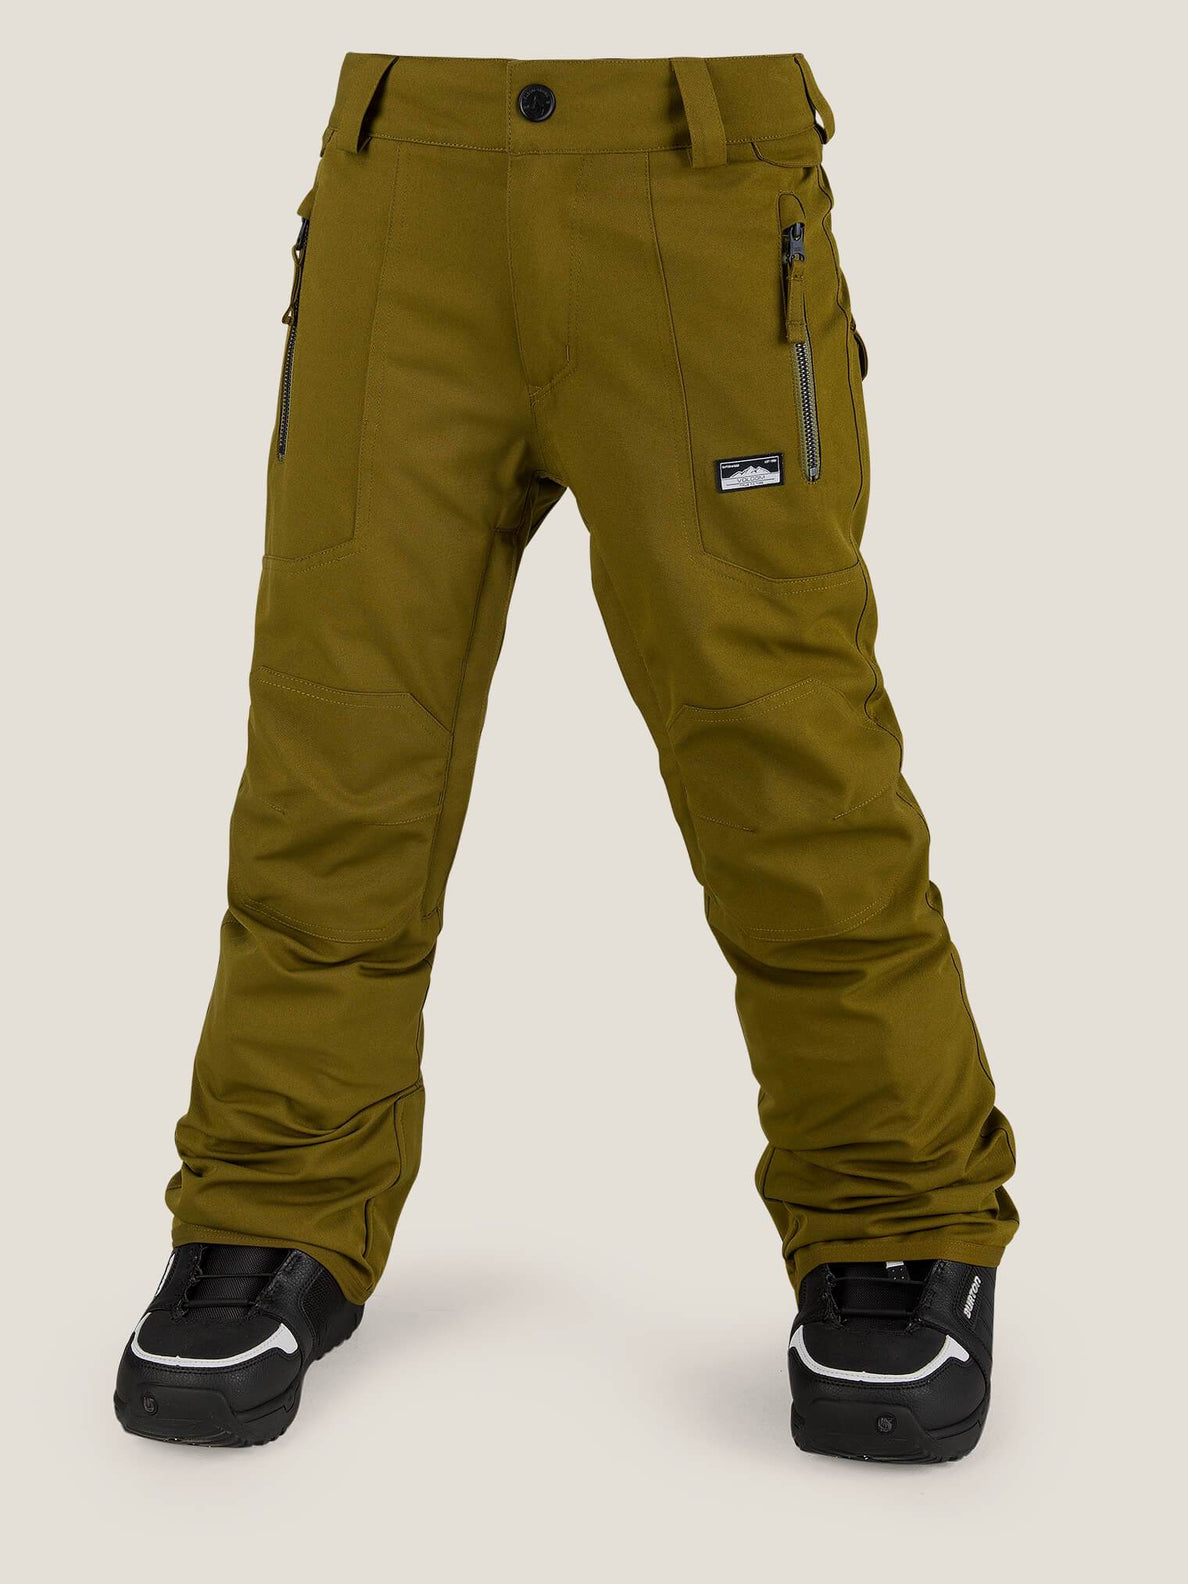 Datura Pant In Moss, Front View